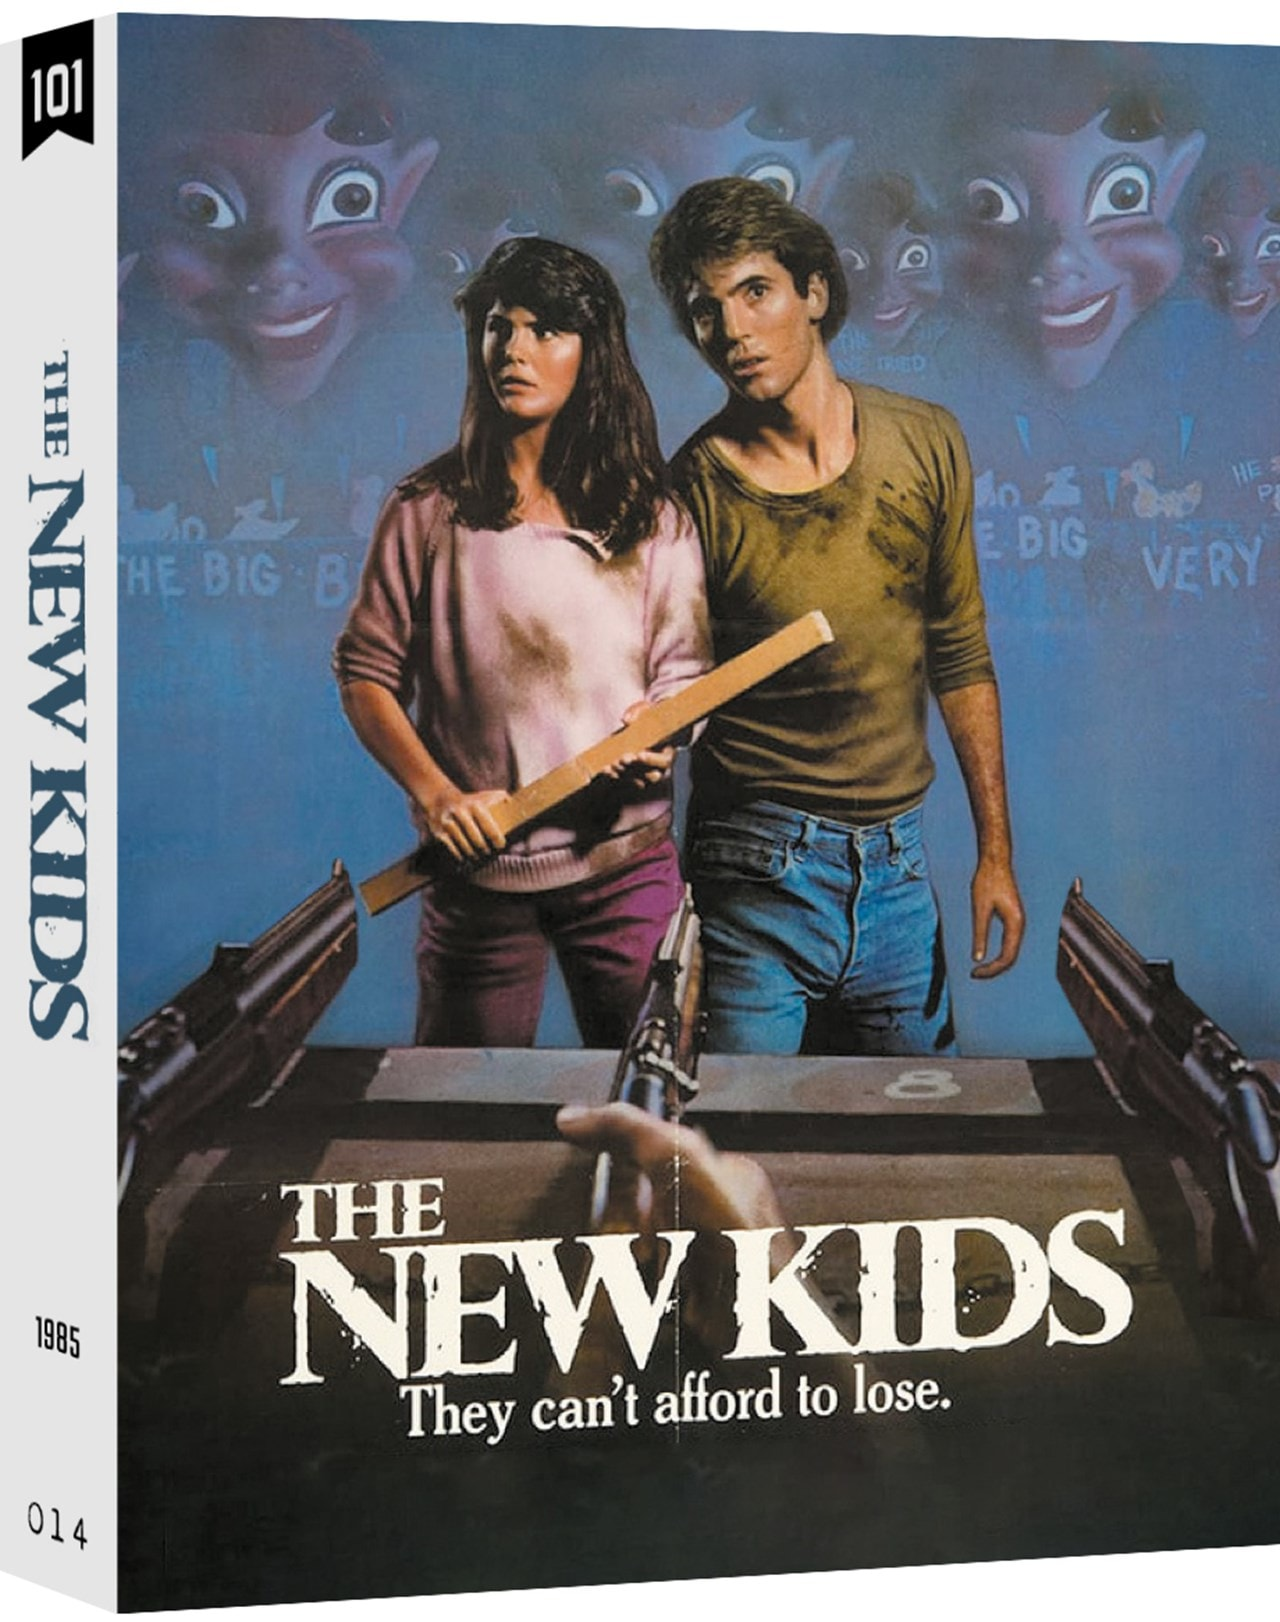 The New Kids - 3